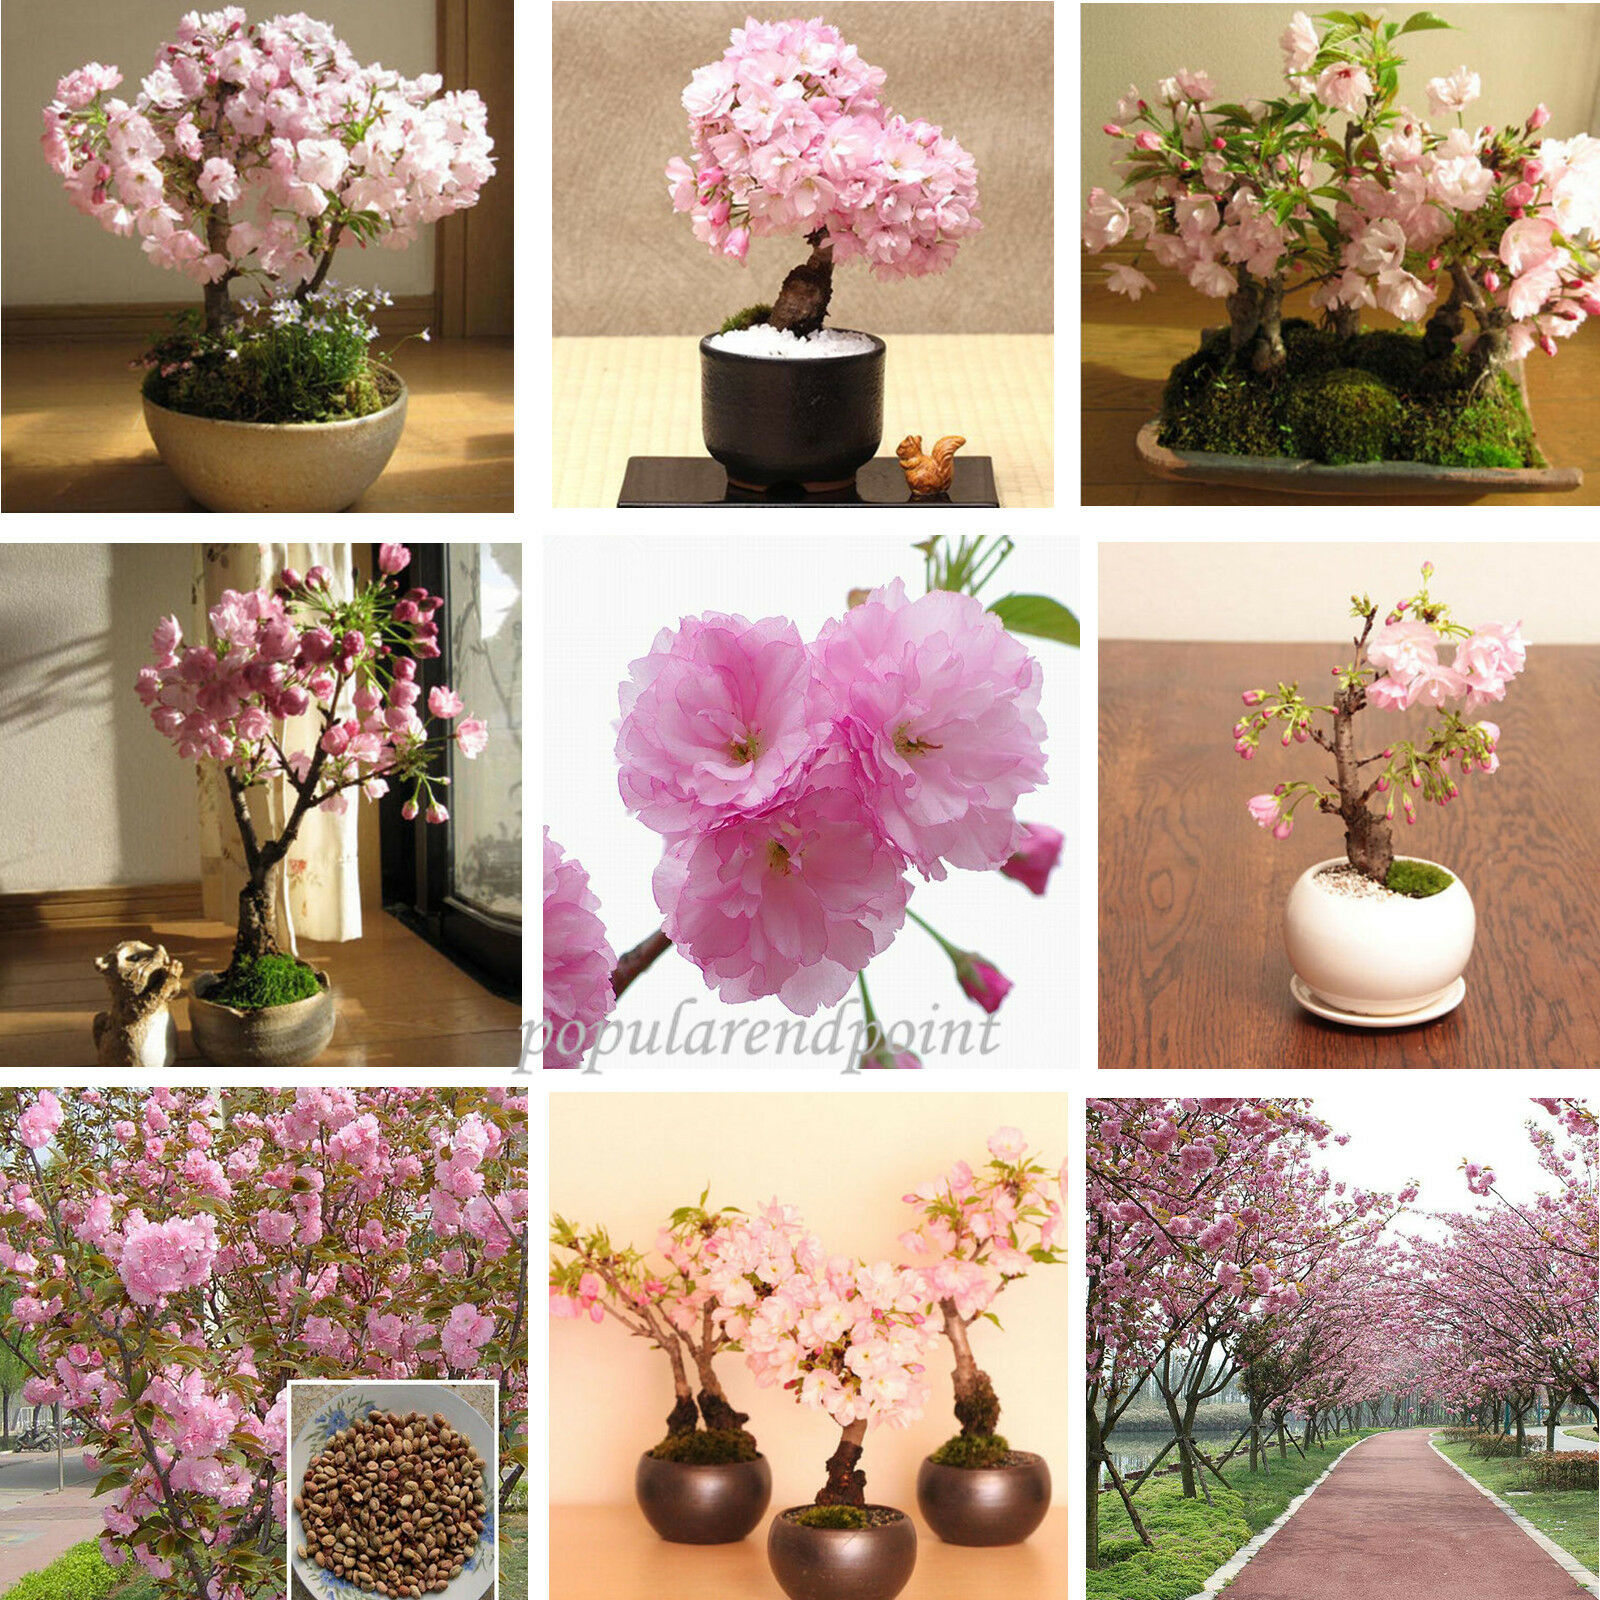 100 Japanese Cherry Blossom Tree Seed Bonsai Blossoms Sakura Flower Seeds Comb For Sale Online